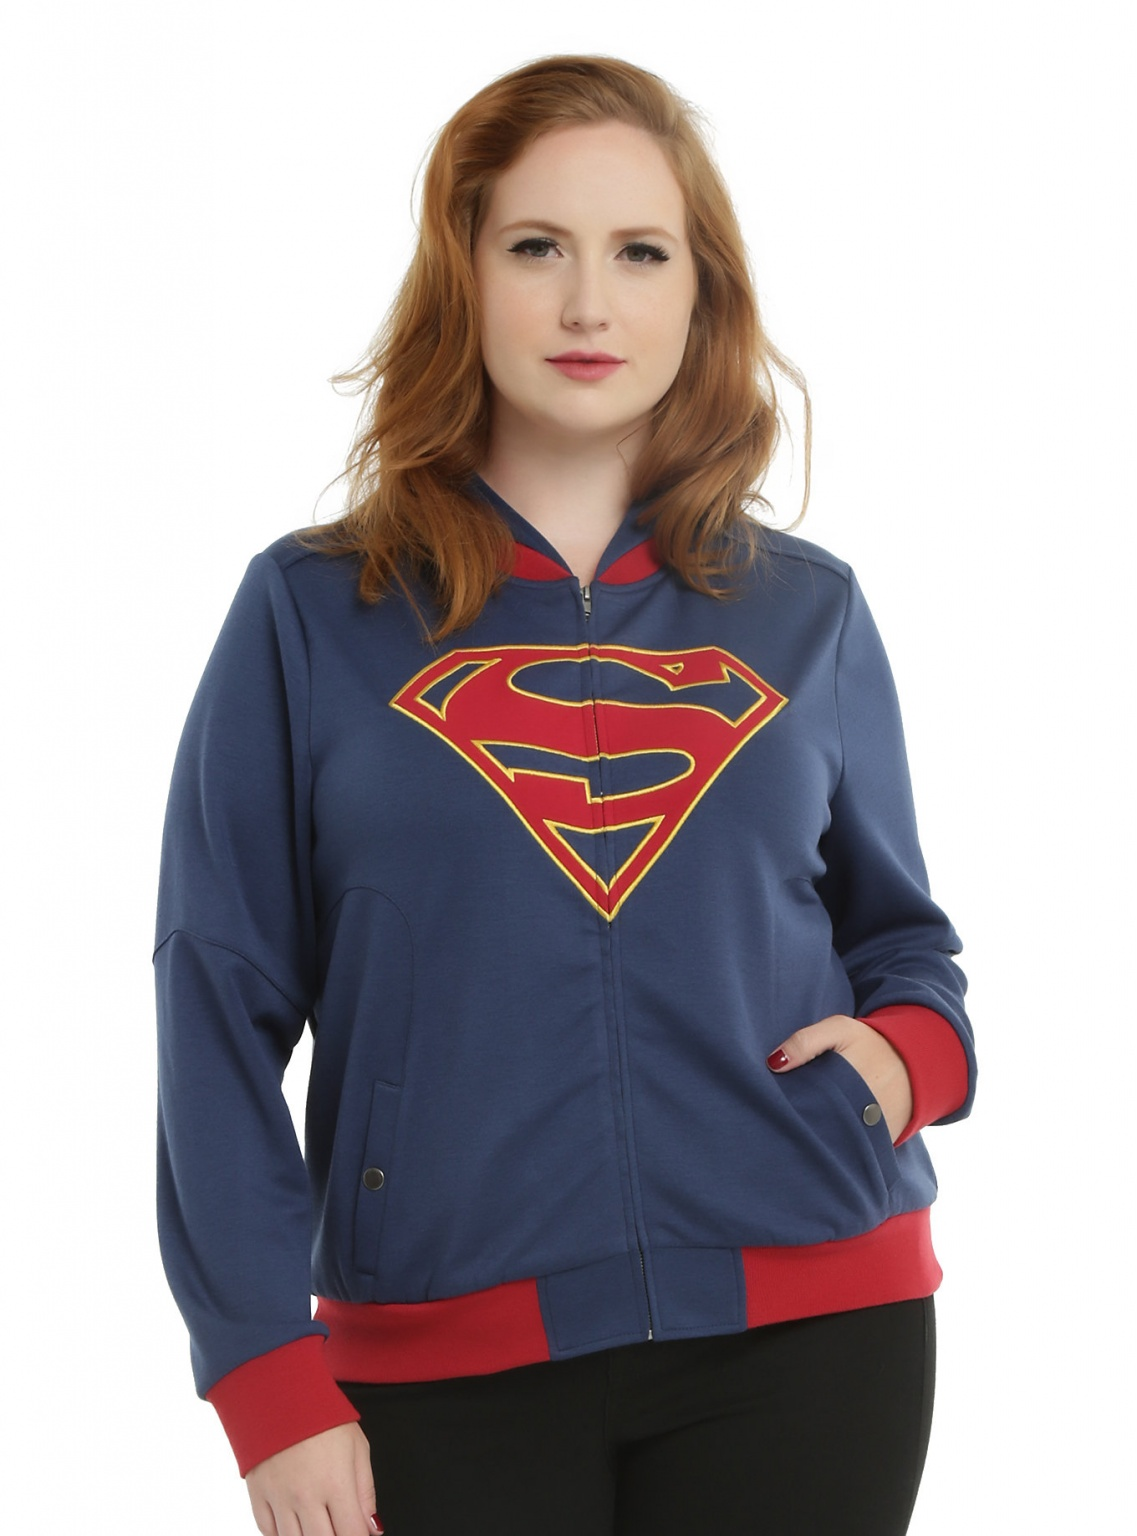 SUPERGIRL HOODED JACKET